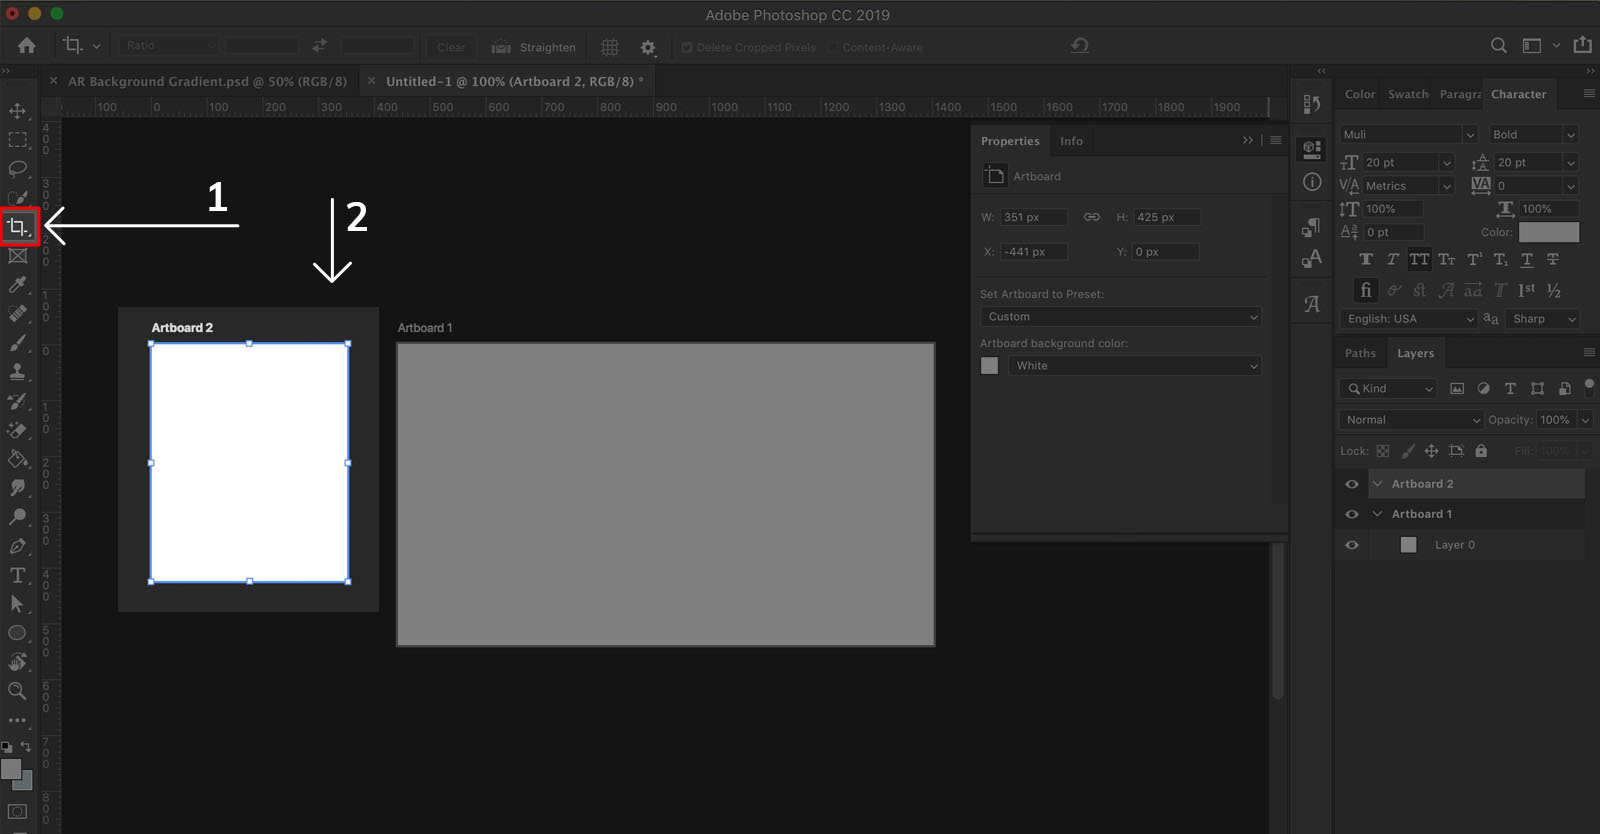 How to draw New artboards in Photoshop